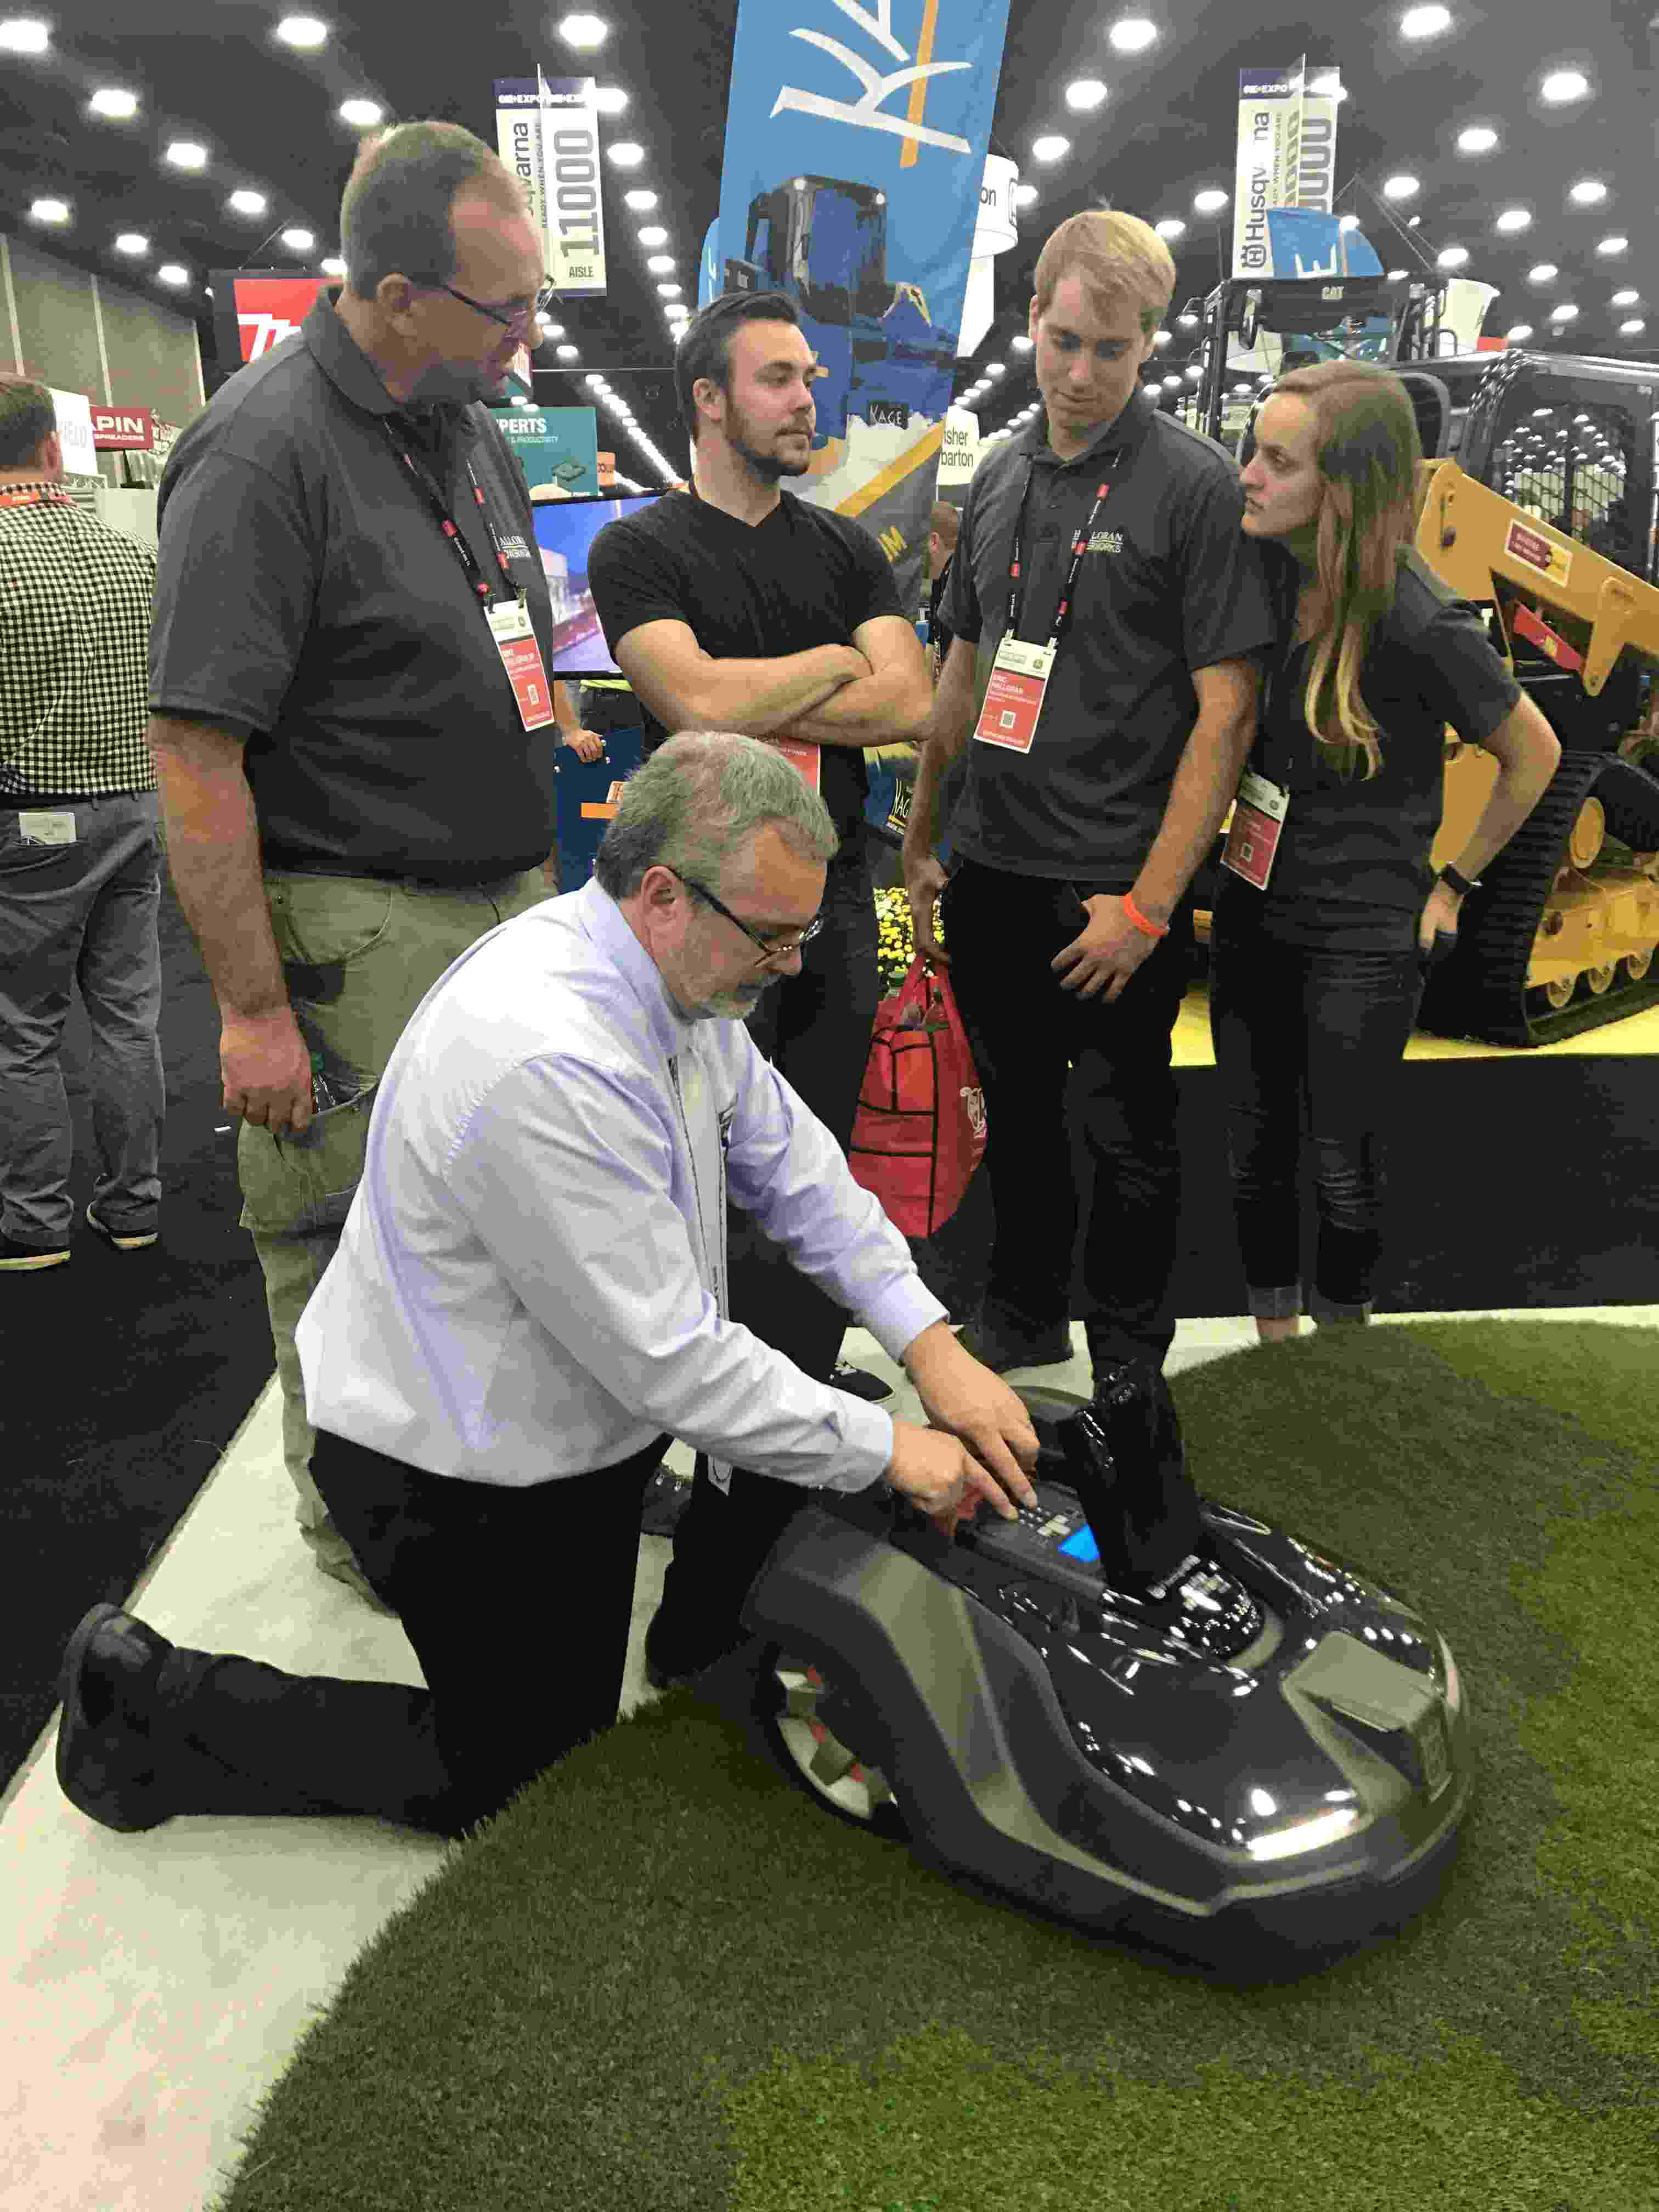 Husqvarna Debuts Brand New Mower And More At 2017 Gie Expo